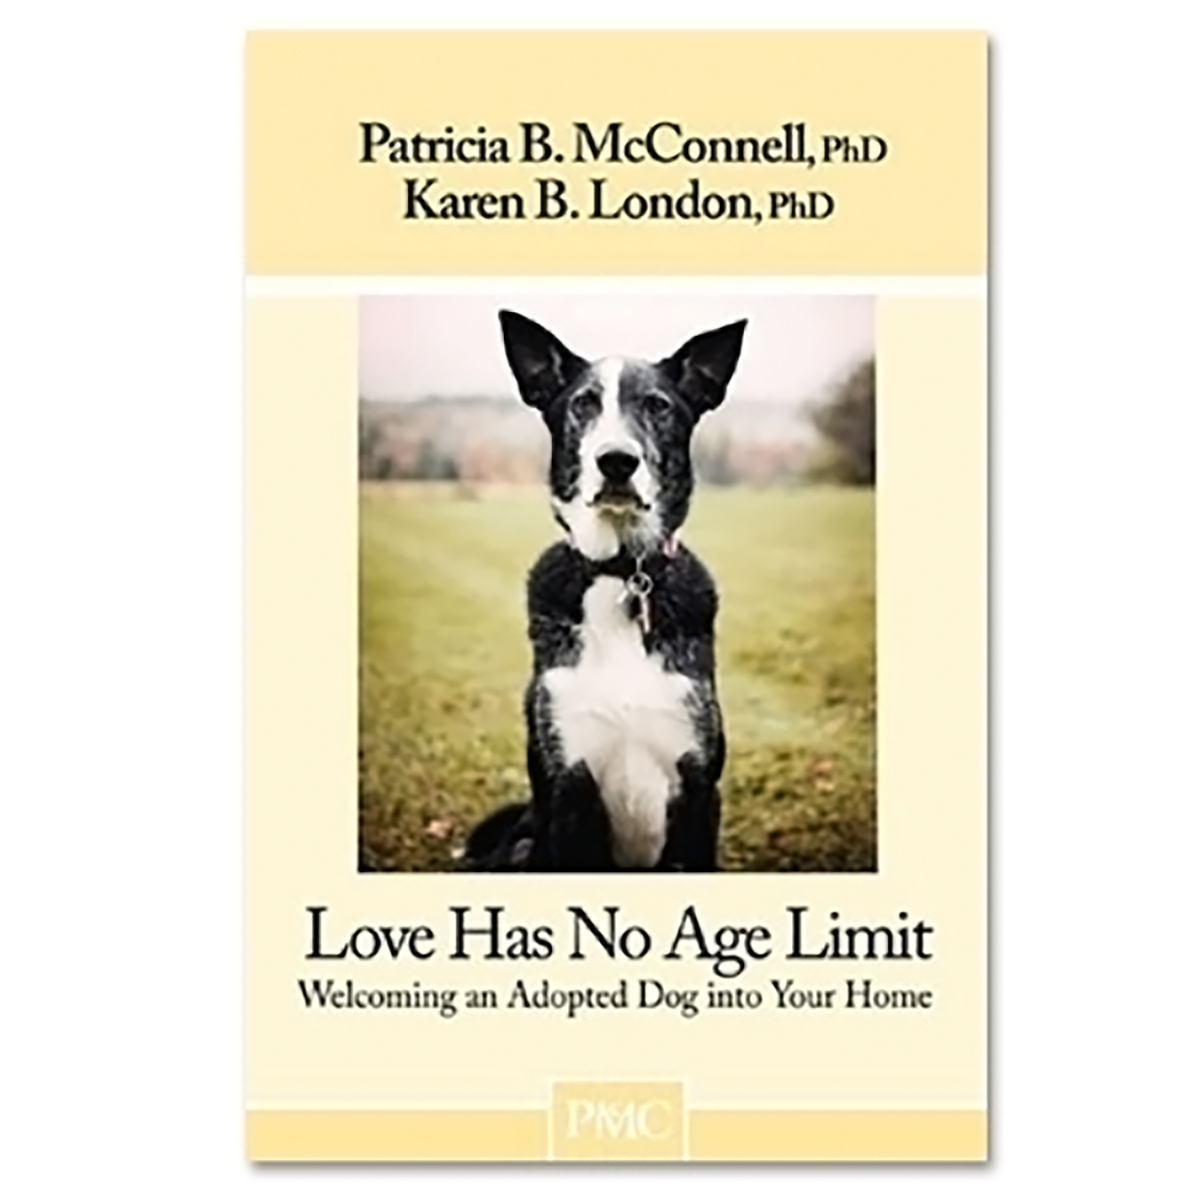 Love Has No Age Limit by Patricia McConnell and Karen London